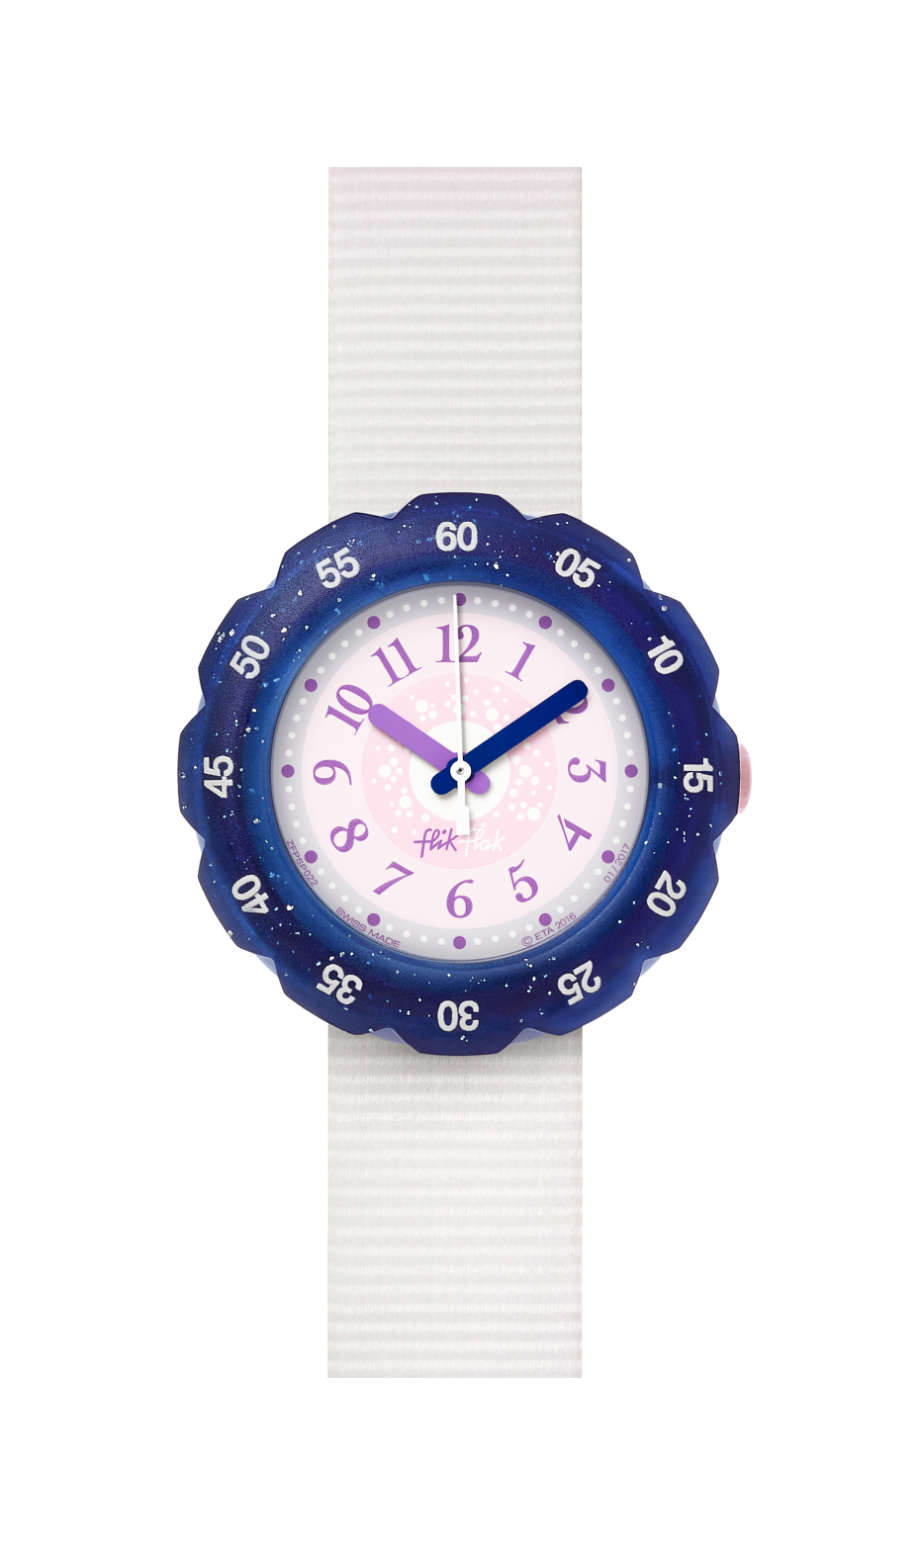 Swatch - MISTY SKIES - 1